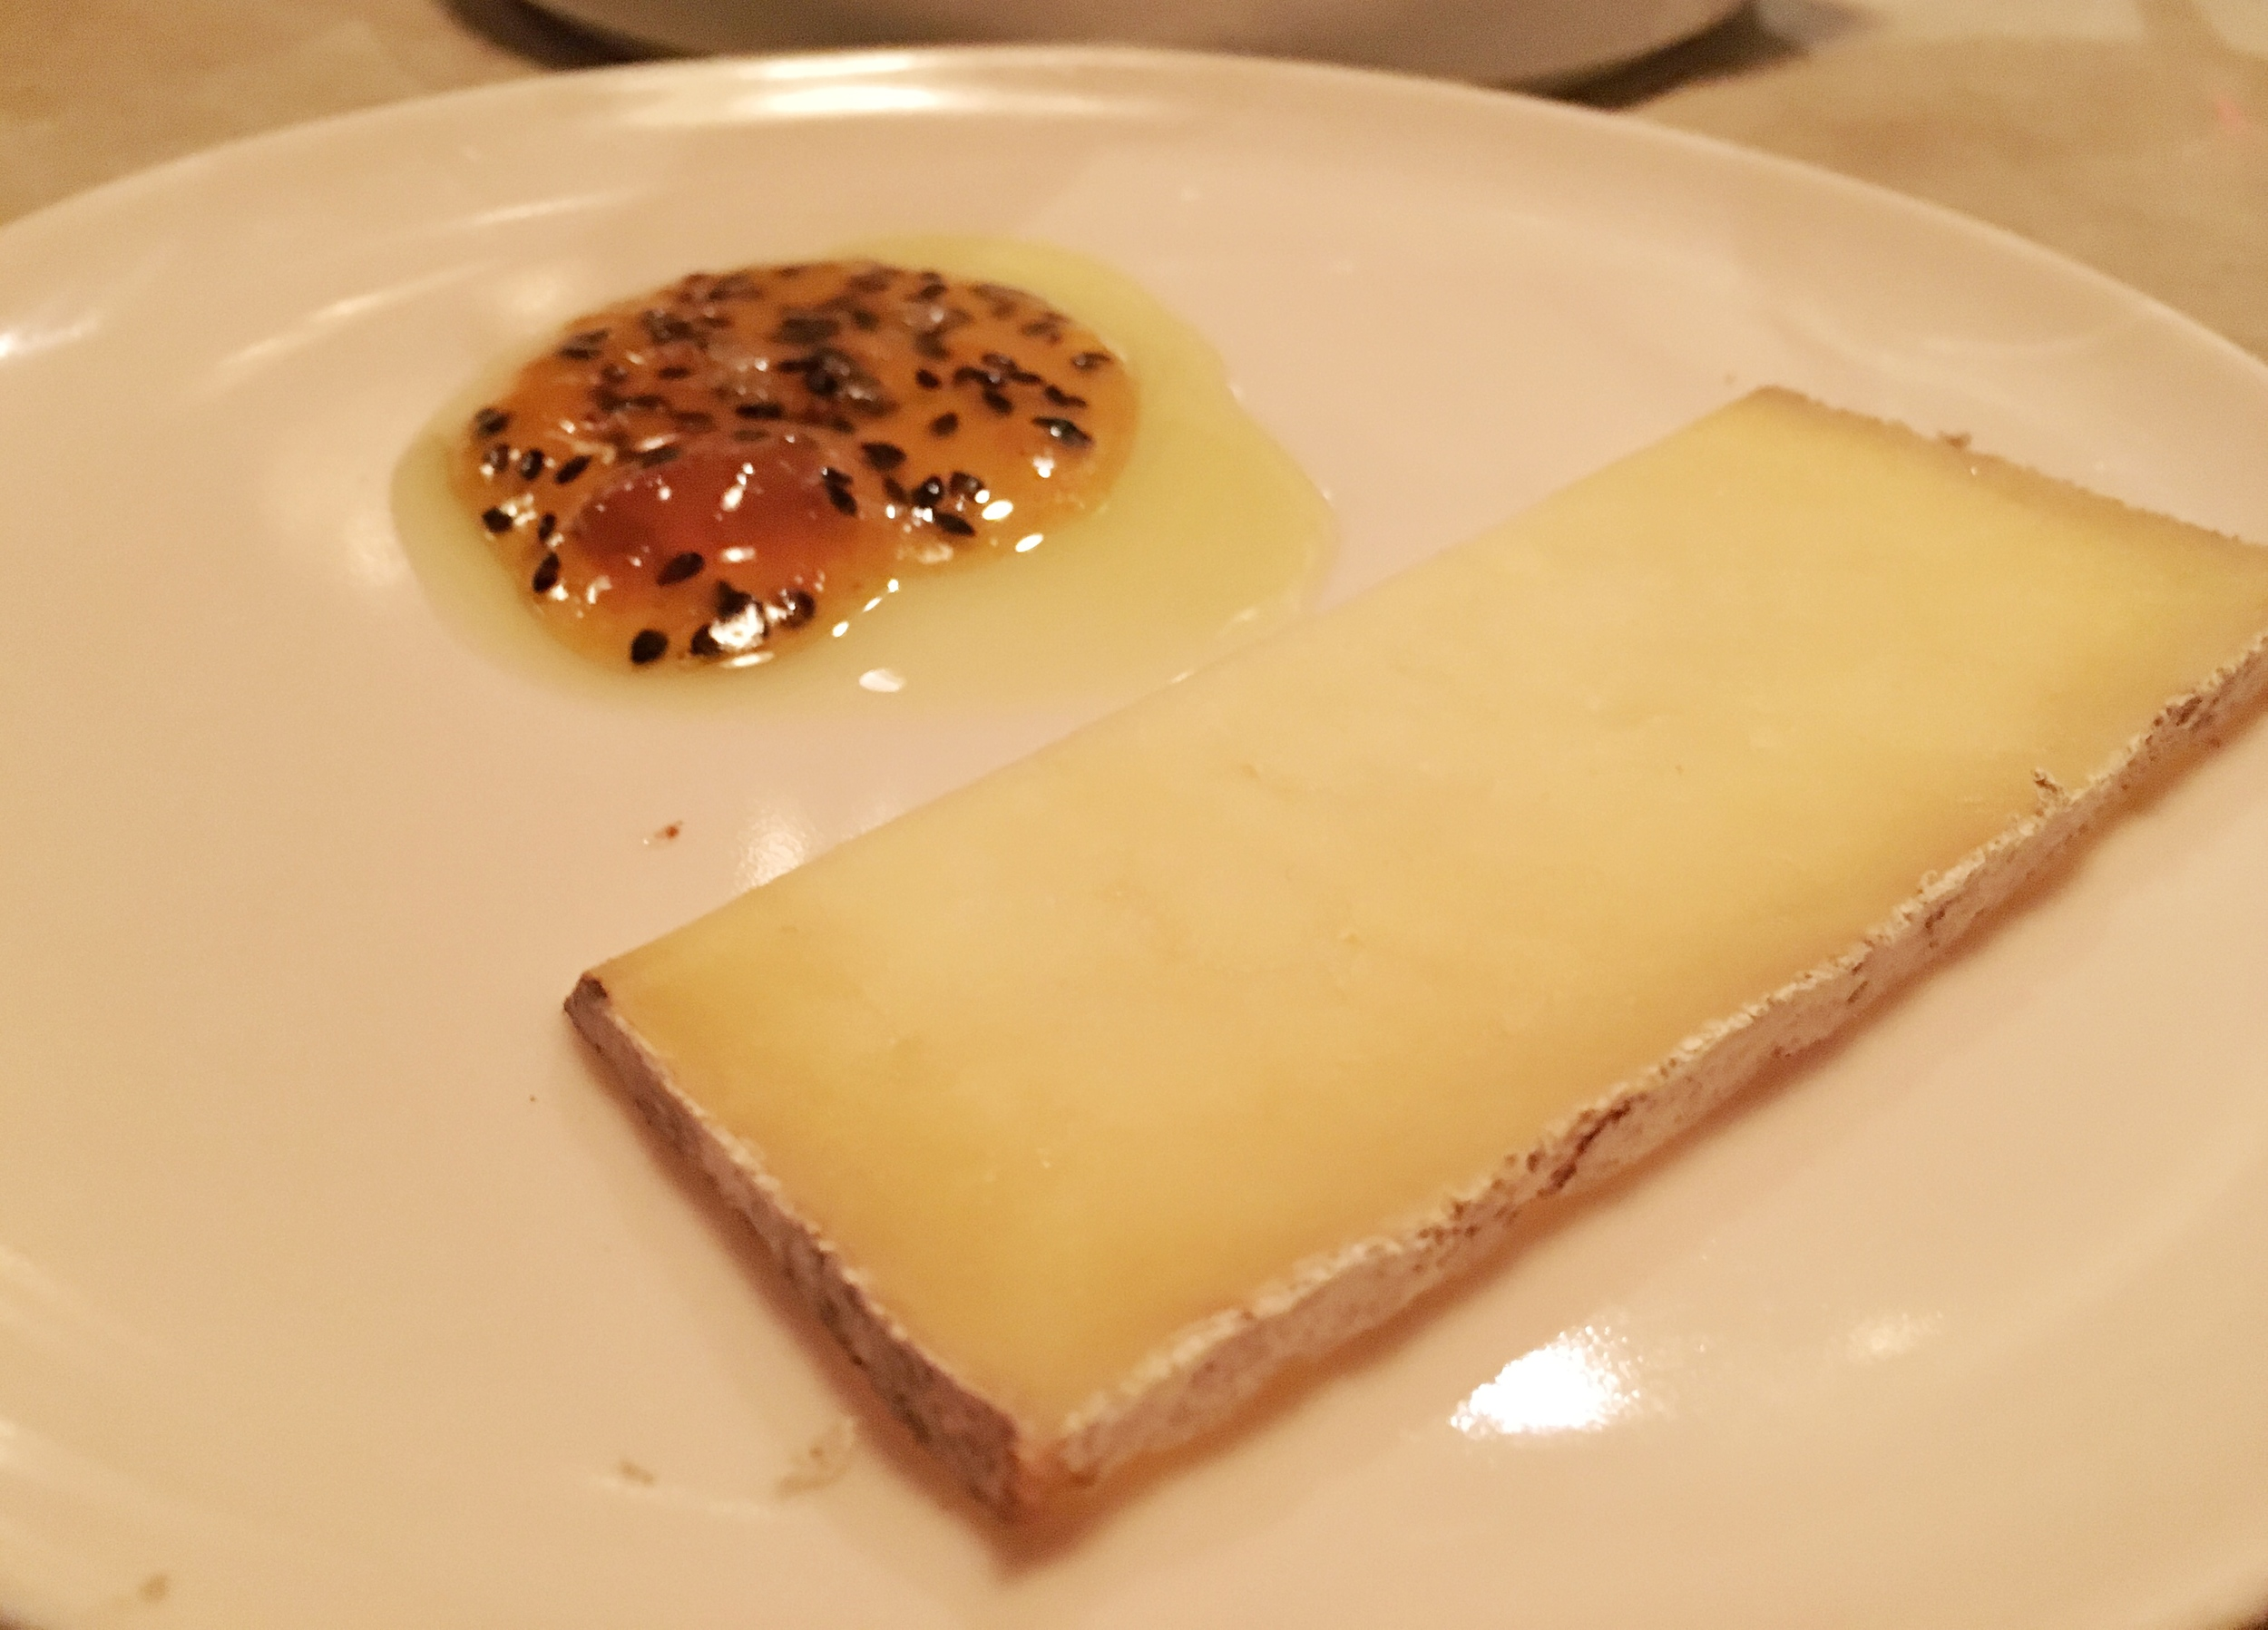 Semi soft cow's milk cheese and marmalade